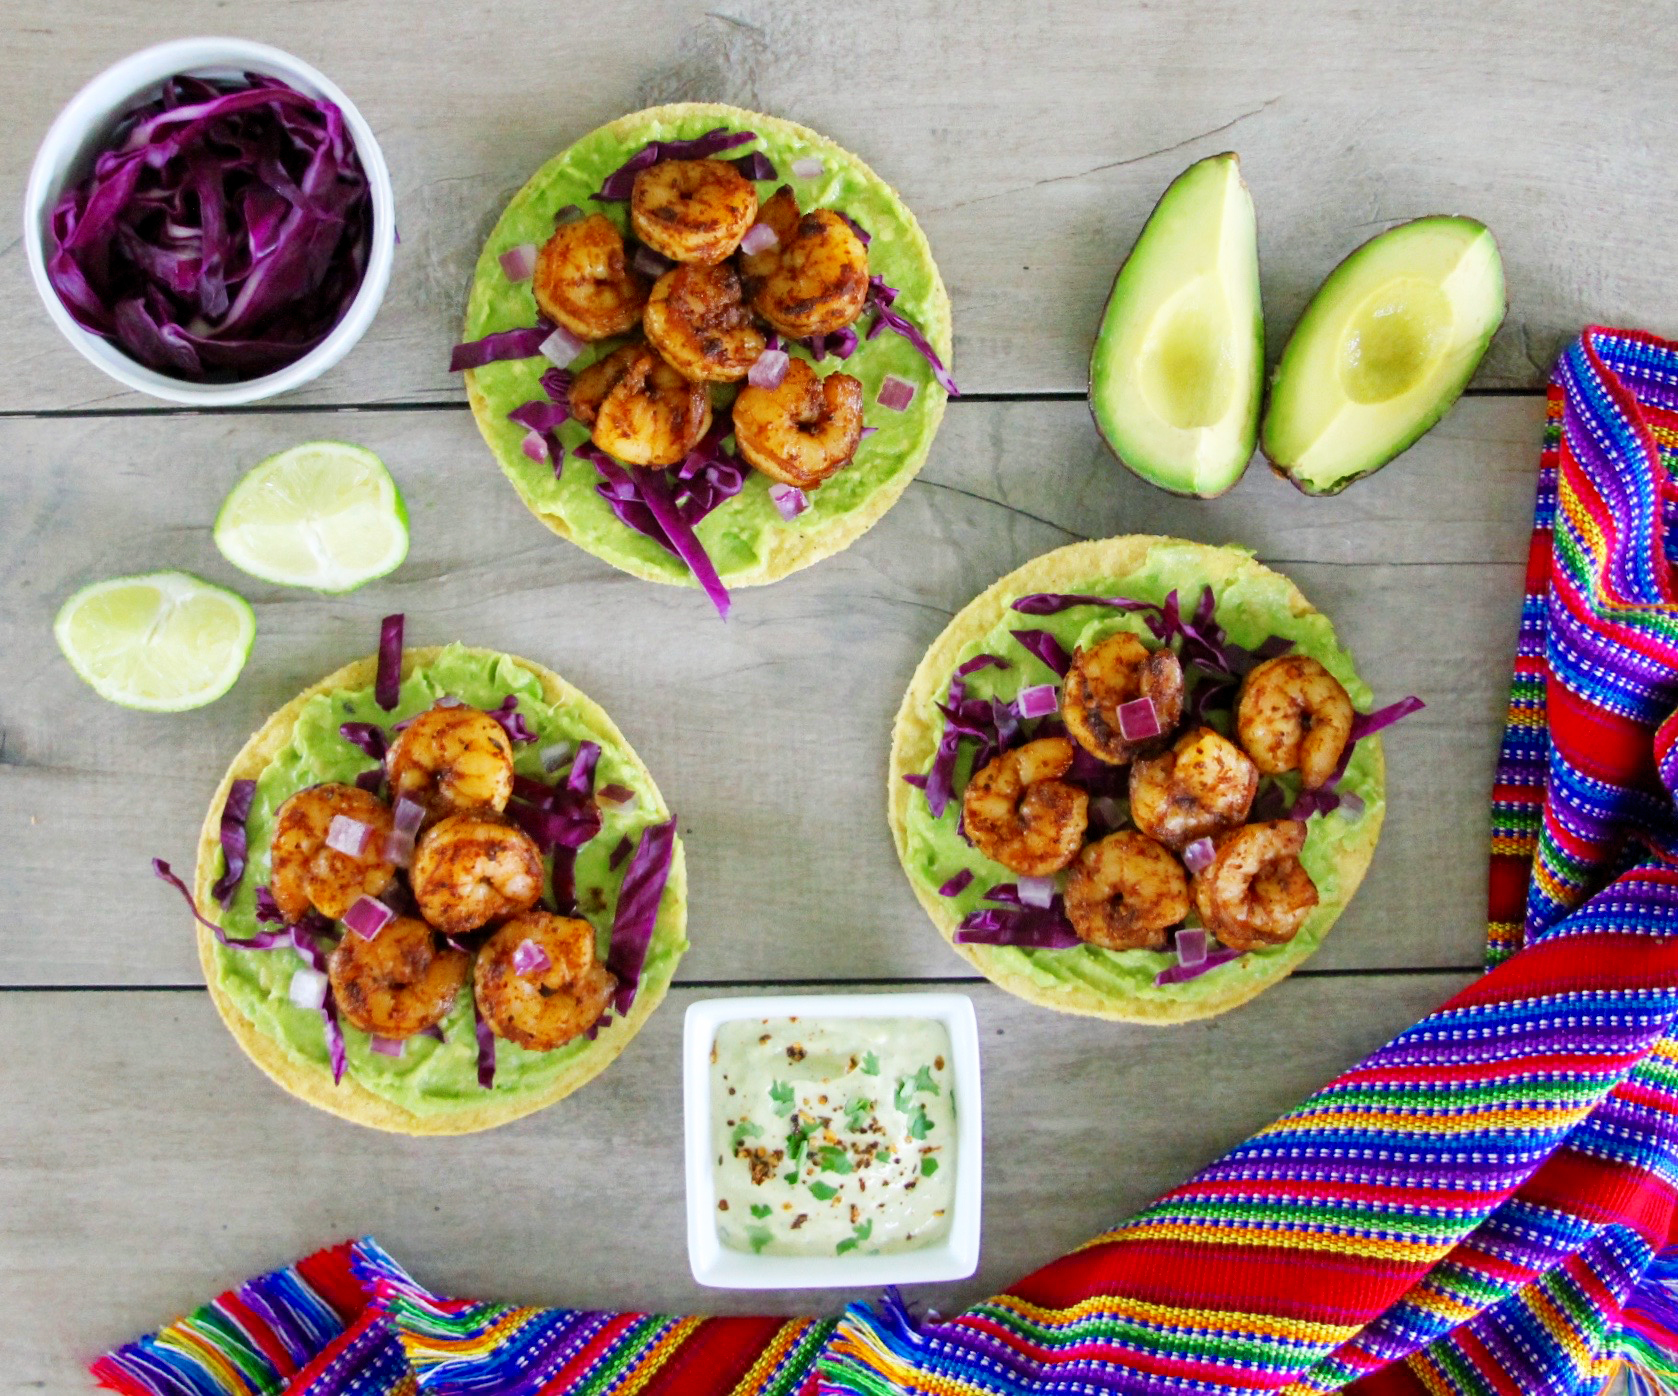 Avocado And Chipotle Shrimp Tostadas With Spicy Cilantro Lime Crema